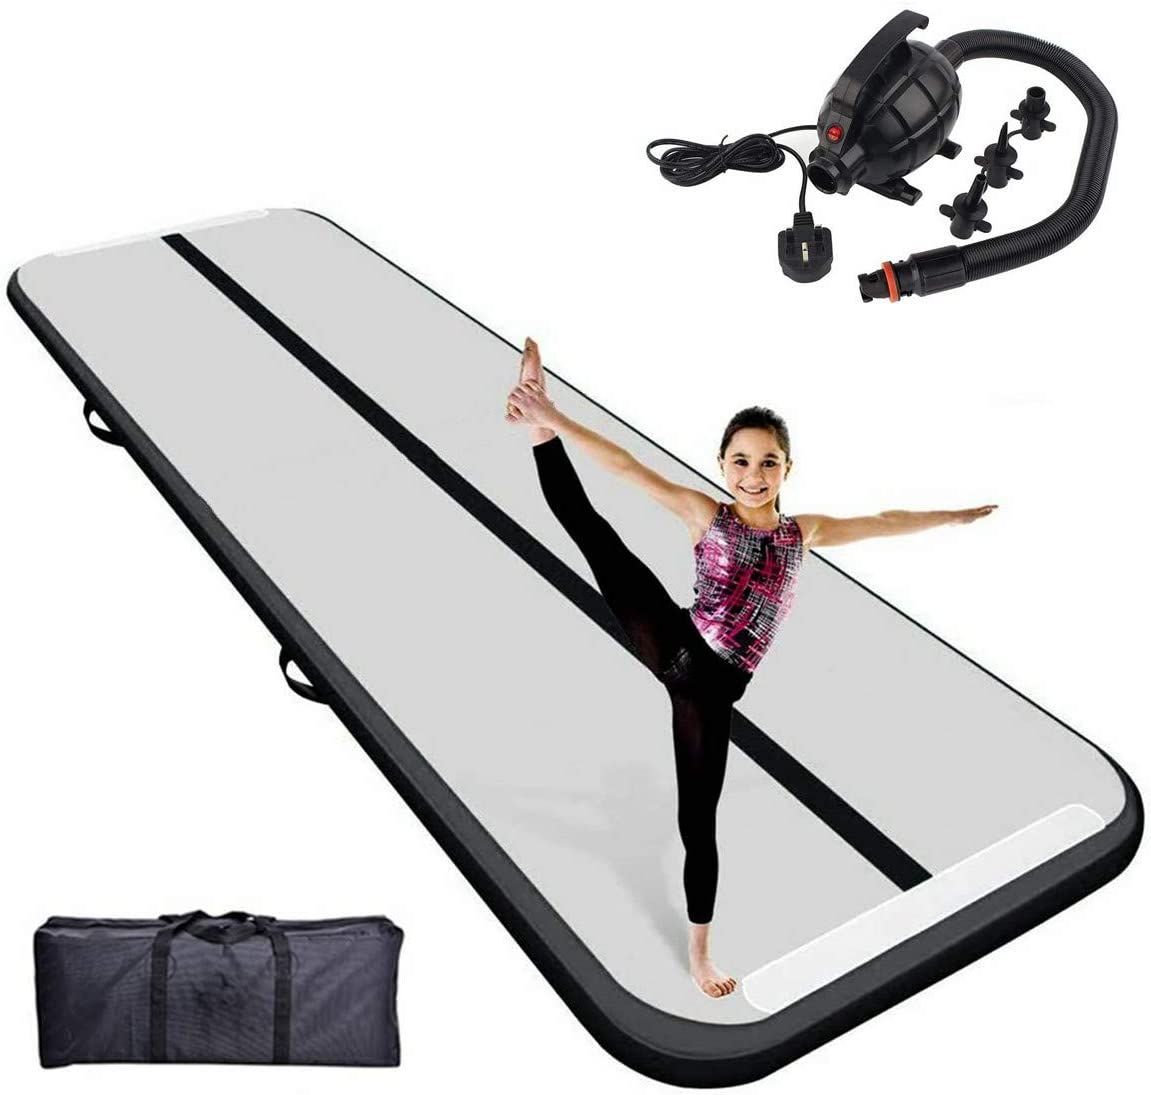 10 Ft Air Tumbling Track Mat-For Gymnastics Training Home Use Yoga Water- Good Gift for Family and Friend ANNTU Inflatable Air Gymnastics Track Mat Cheer leading